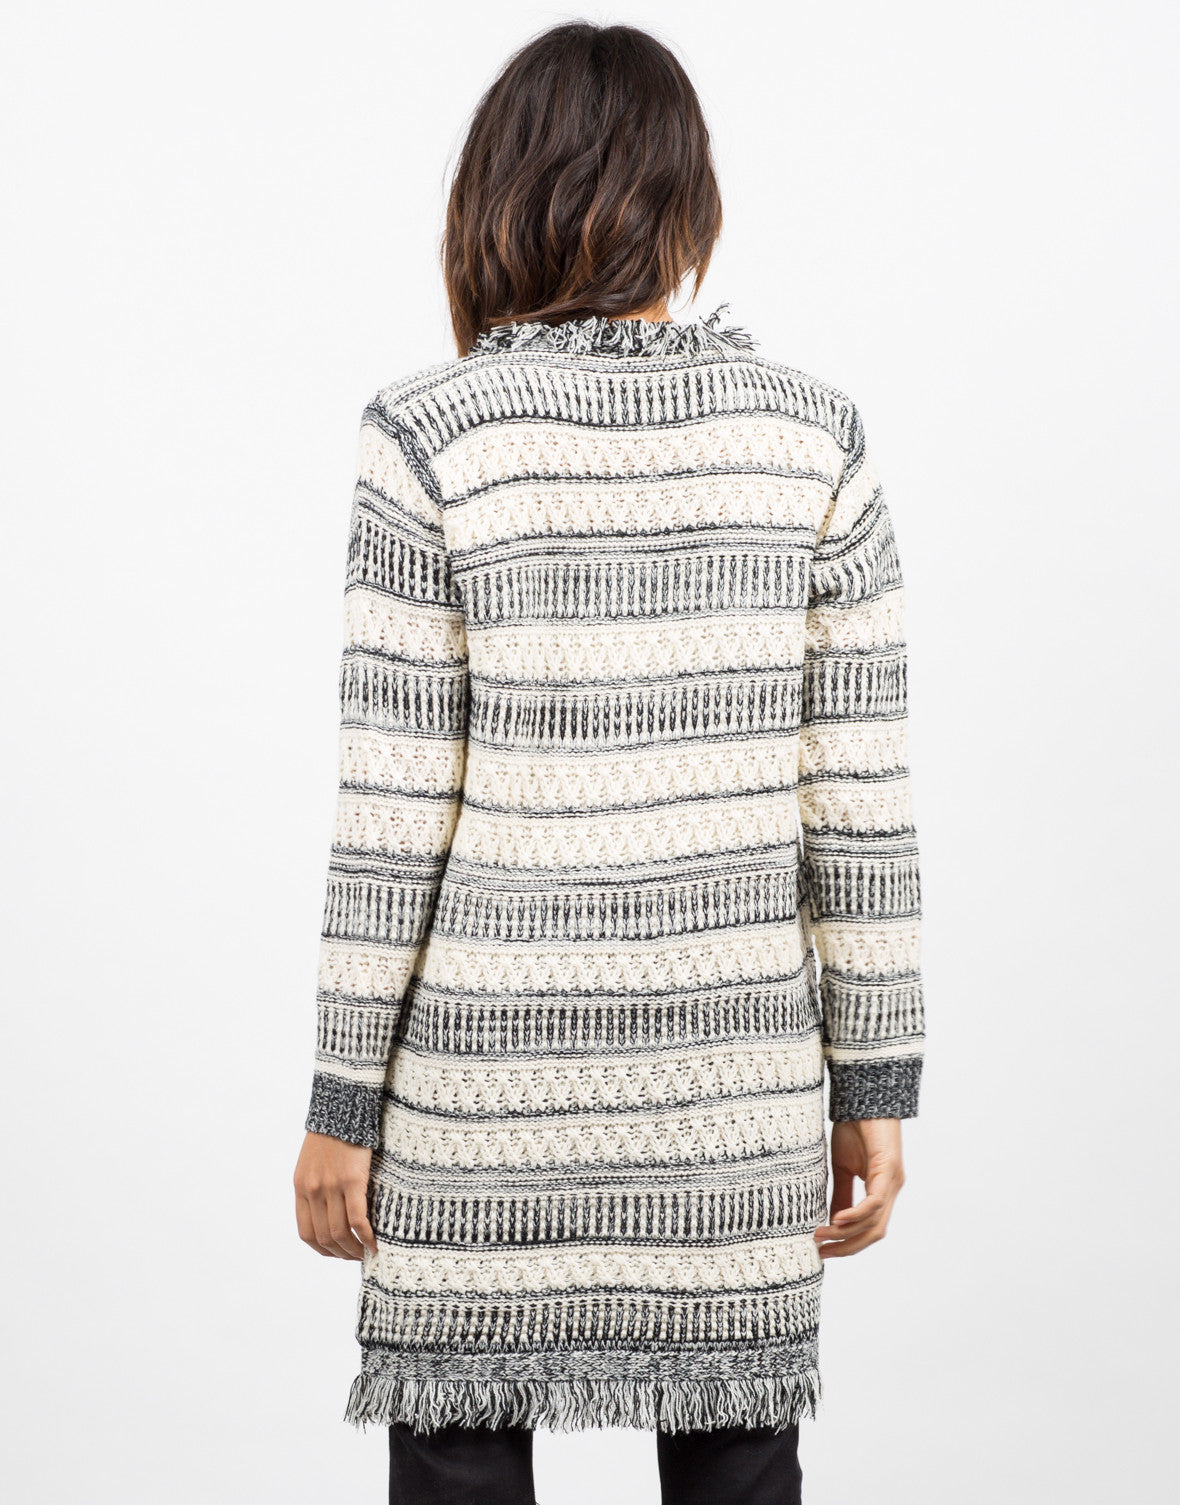 Back View of Wanderer Knit Cardigan